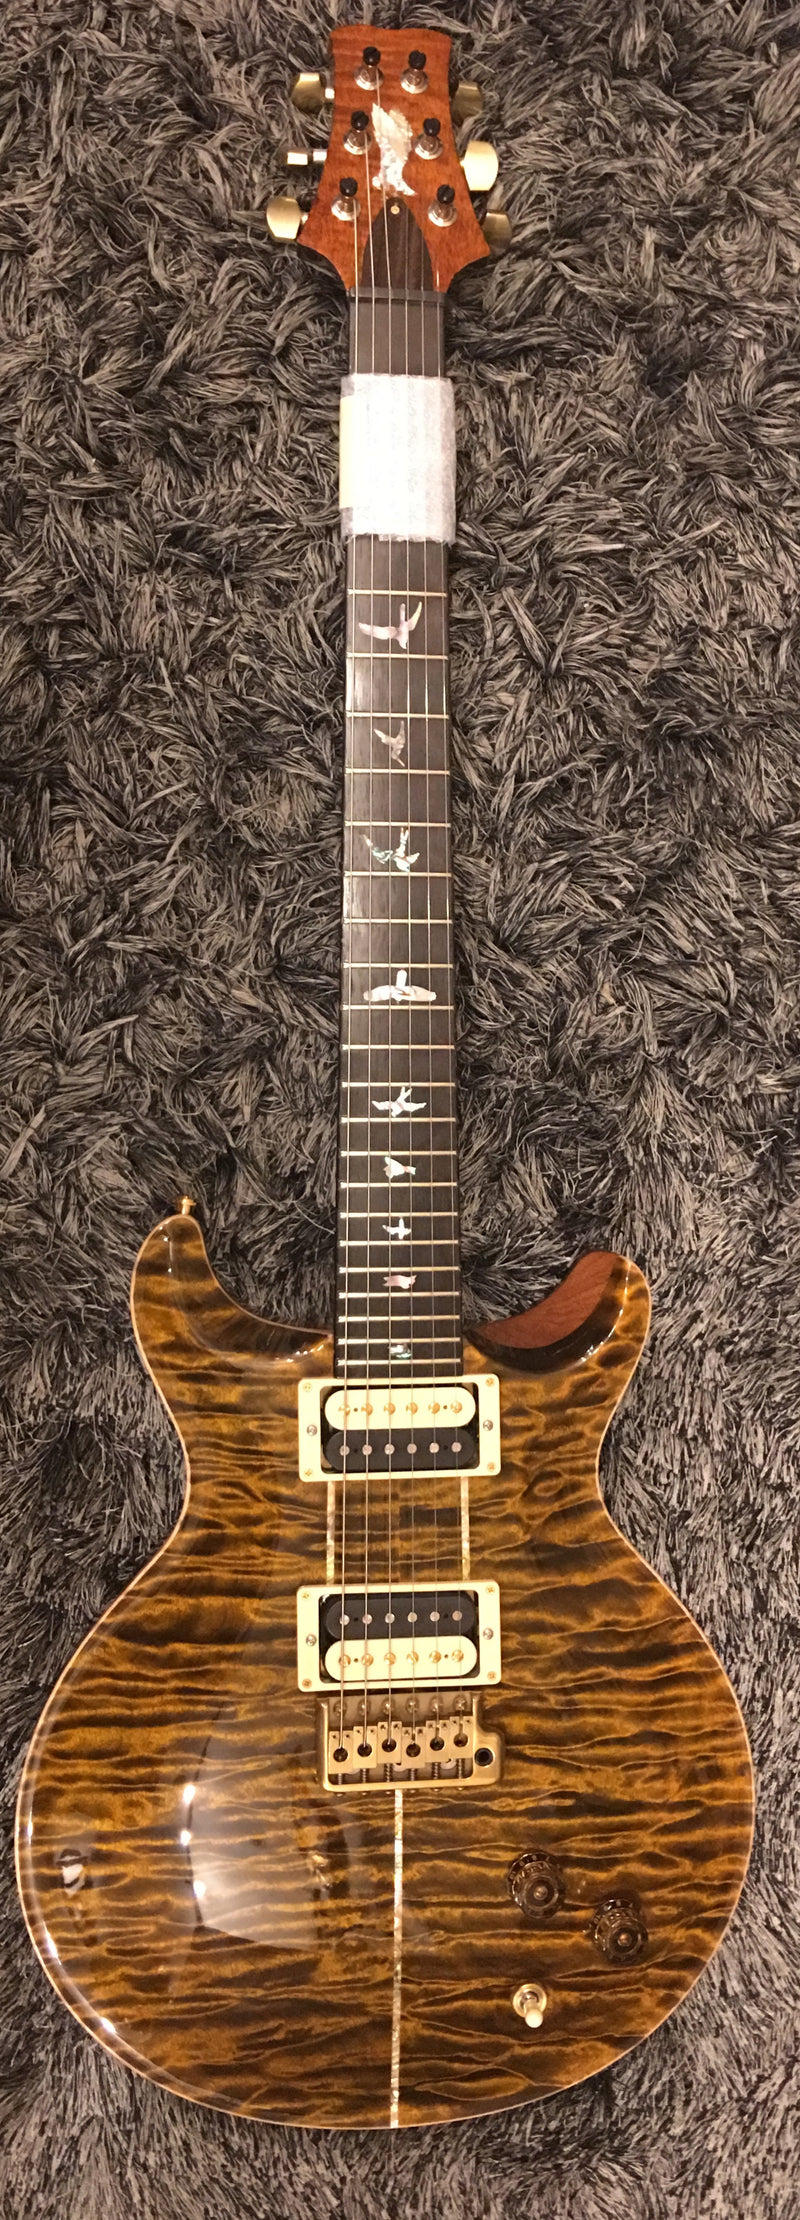 PRS Santana Private stock tiger eye quilt